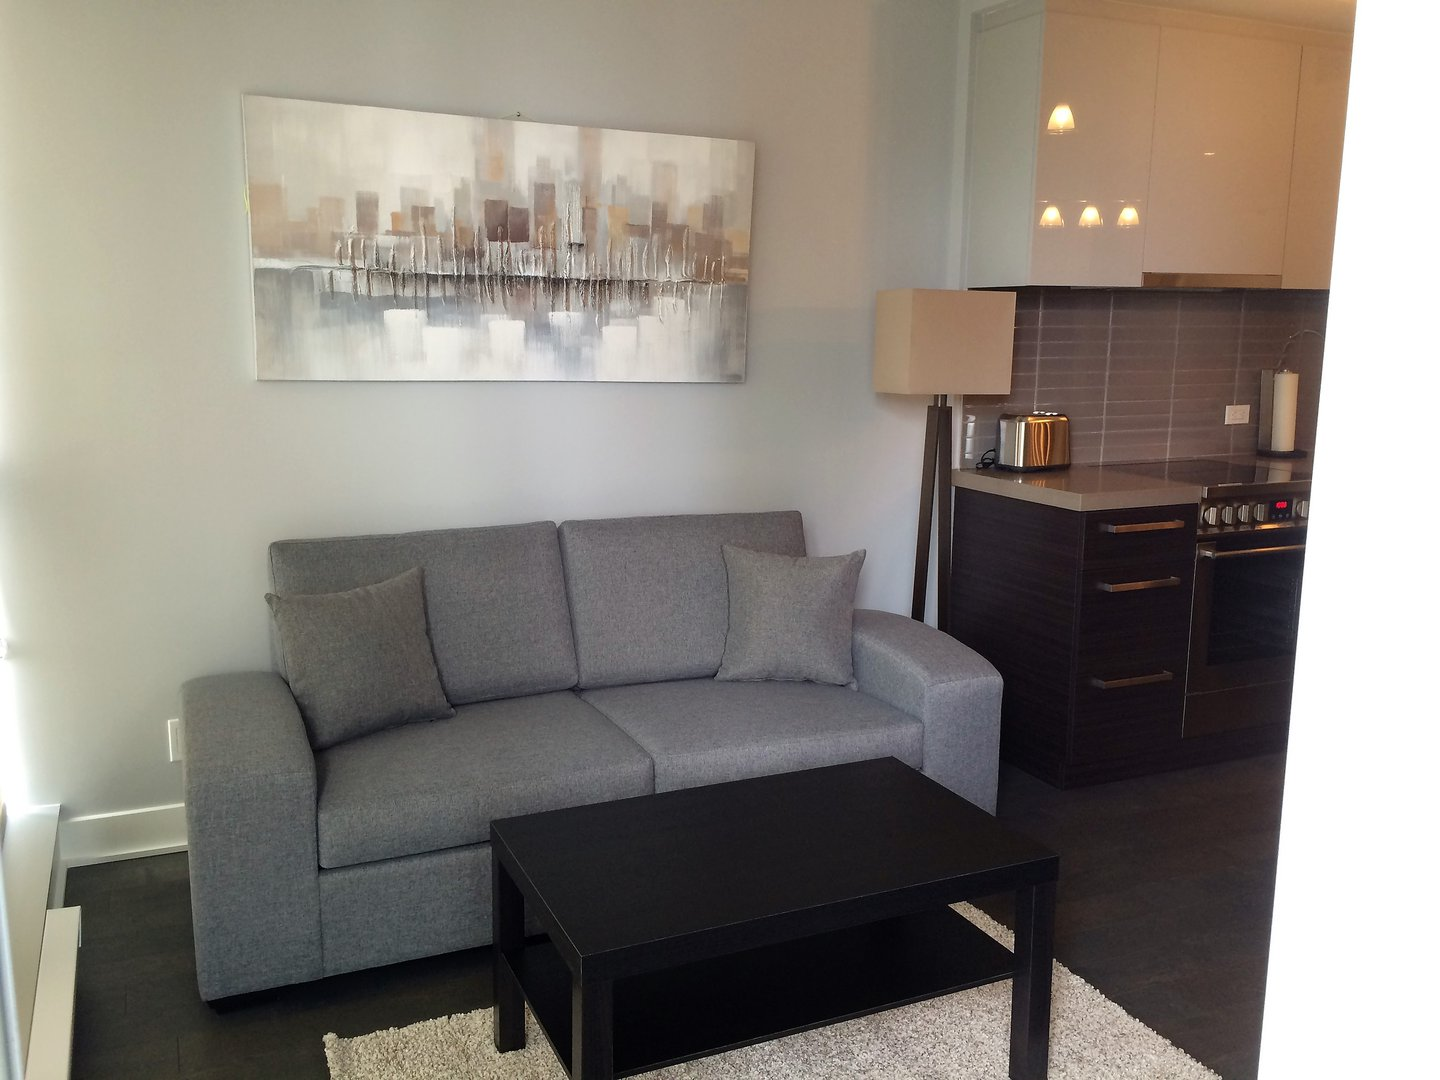 Condo for rent at 1050 Rue Drummond, Montréal, QC. This is the living room with hardwood floor.